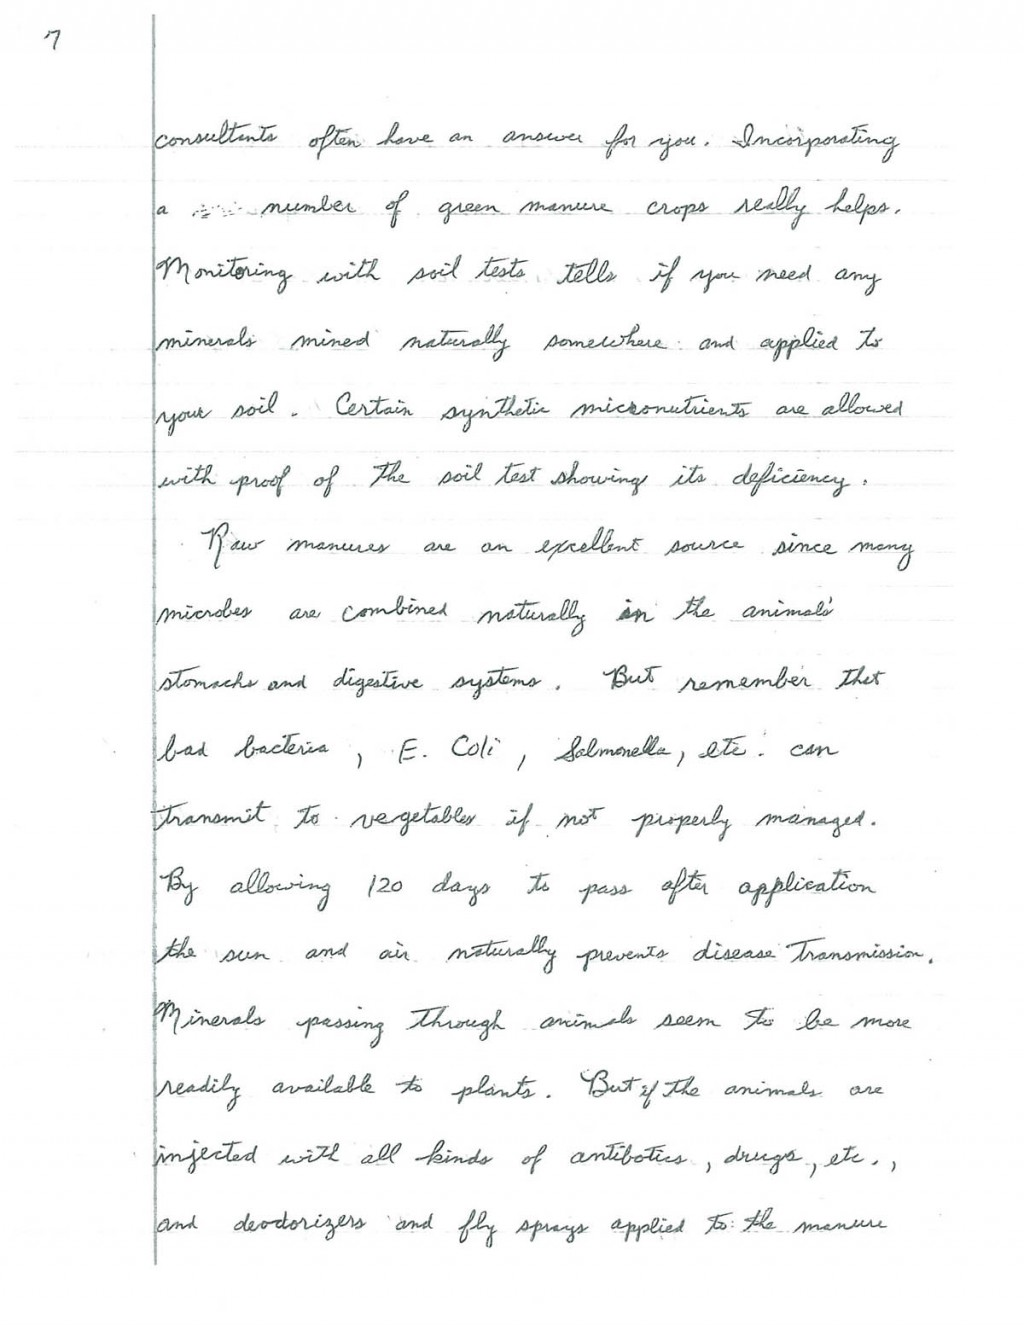 013 Essay Example Handwriting Amish Farmer Importance Good Cursive Vs Typing Analysis Recognition Sat Titles For Fearsome On Short Of In Hindi Gujarati Large